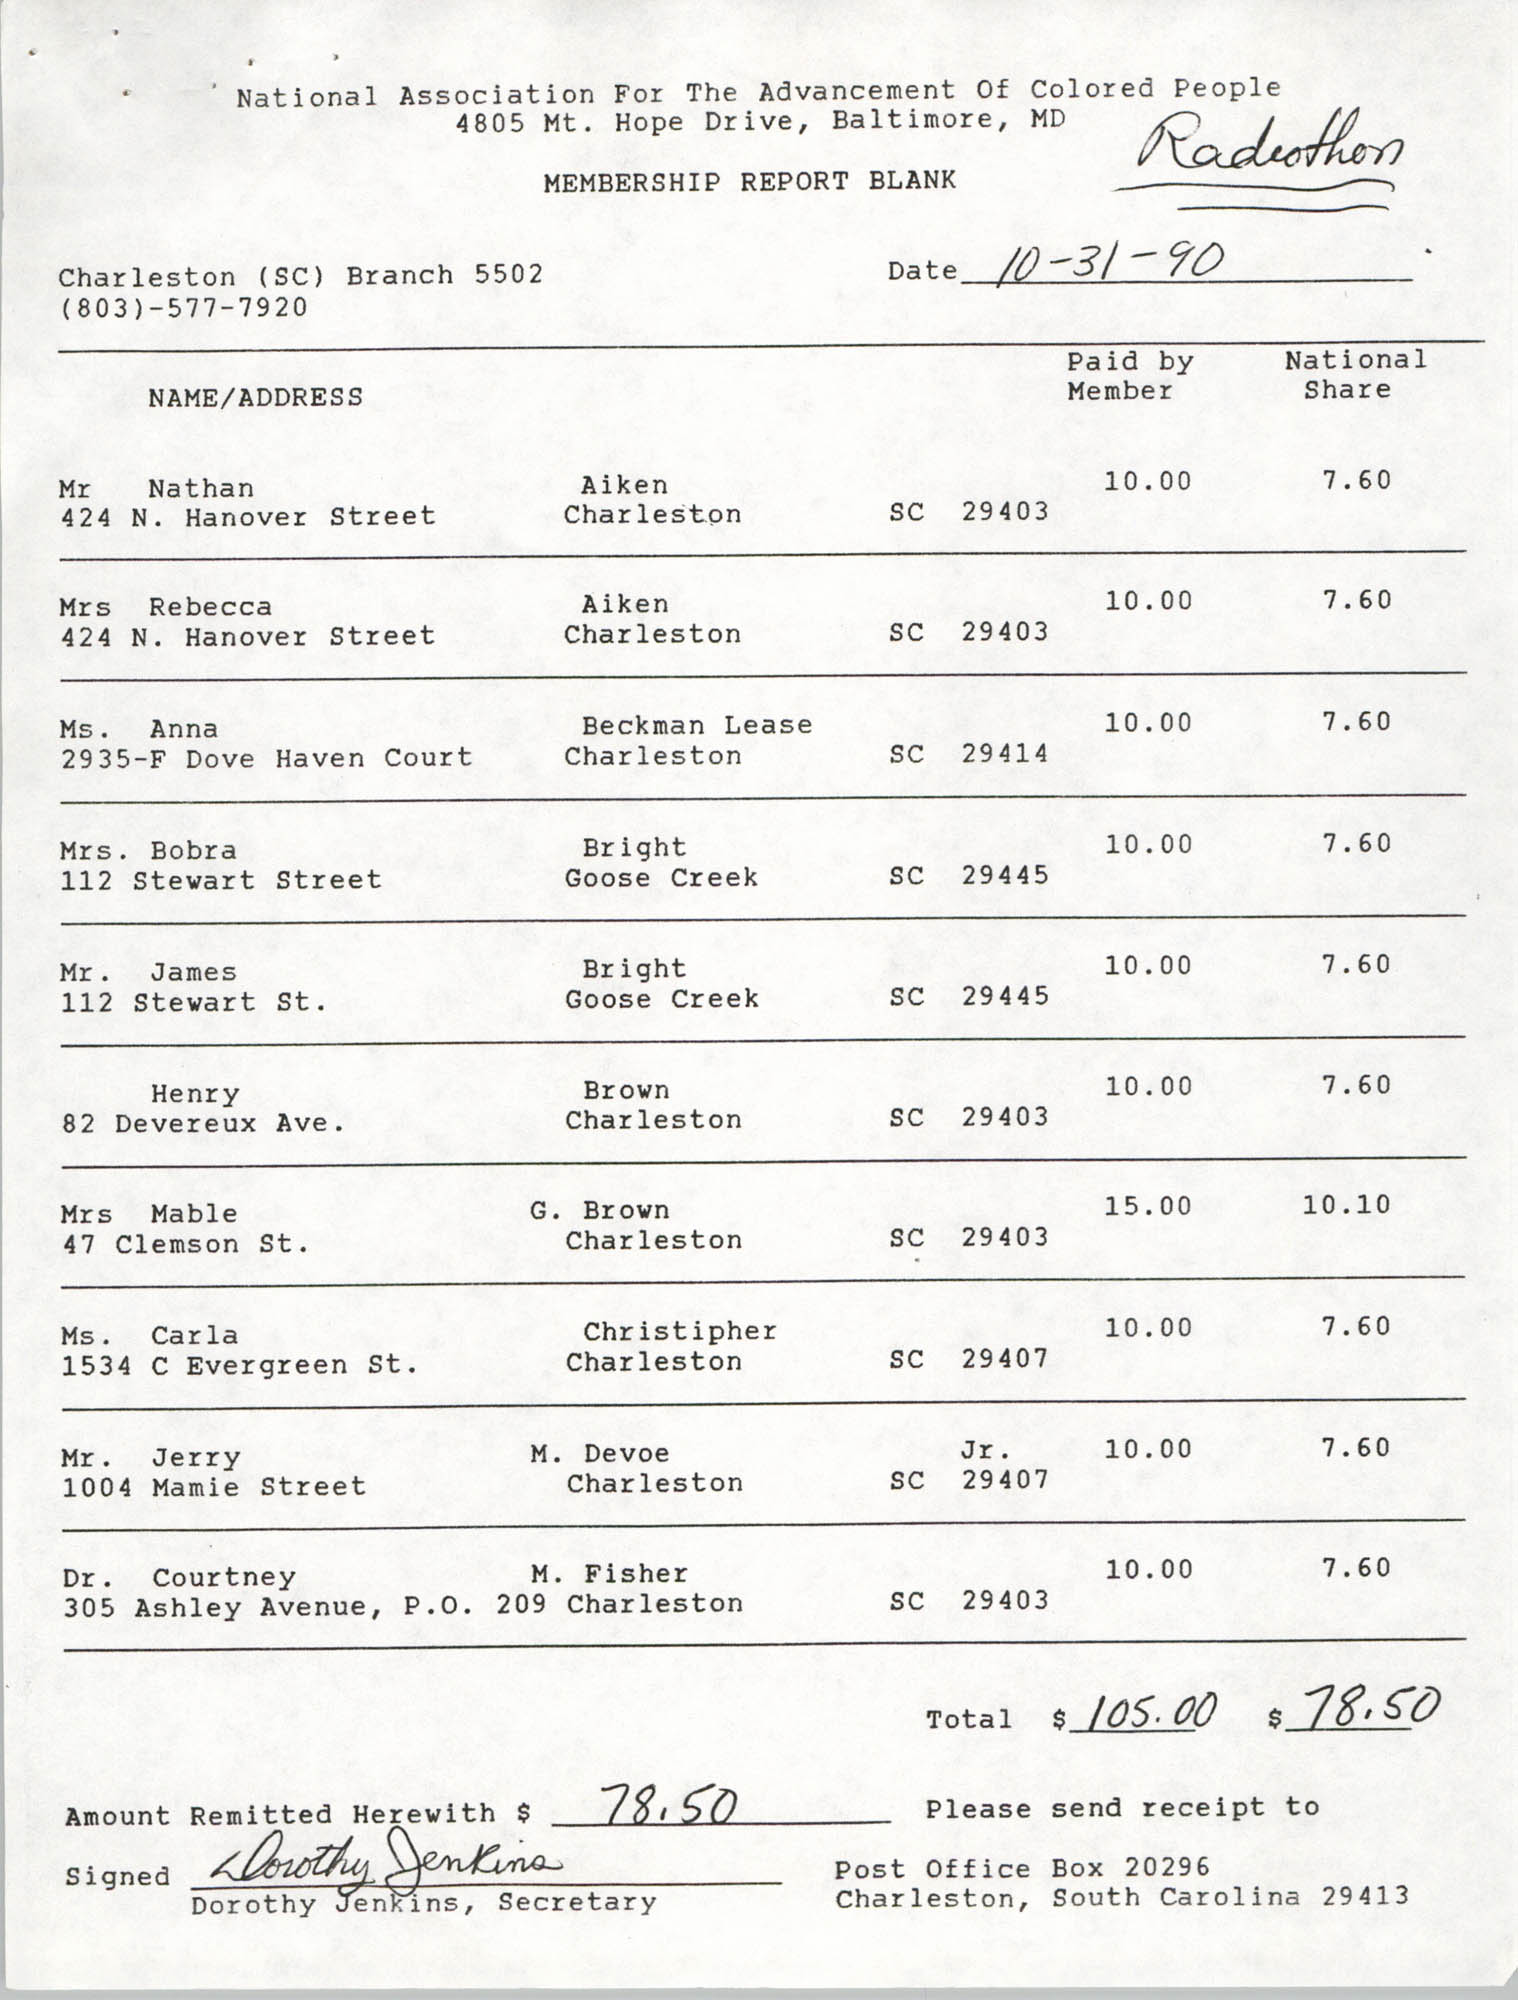 Membership Report Blank, Charleston Branch of the NAACP, Dorothy Jenkins, October 31, 1990